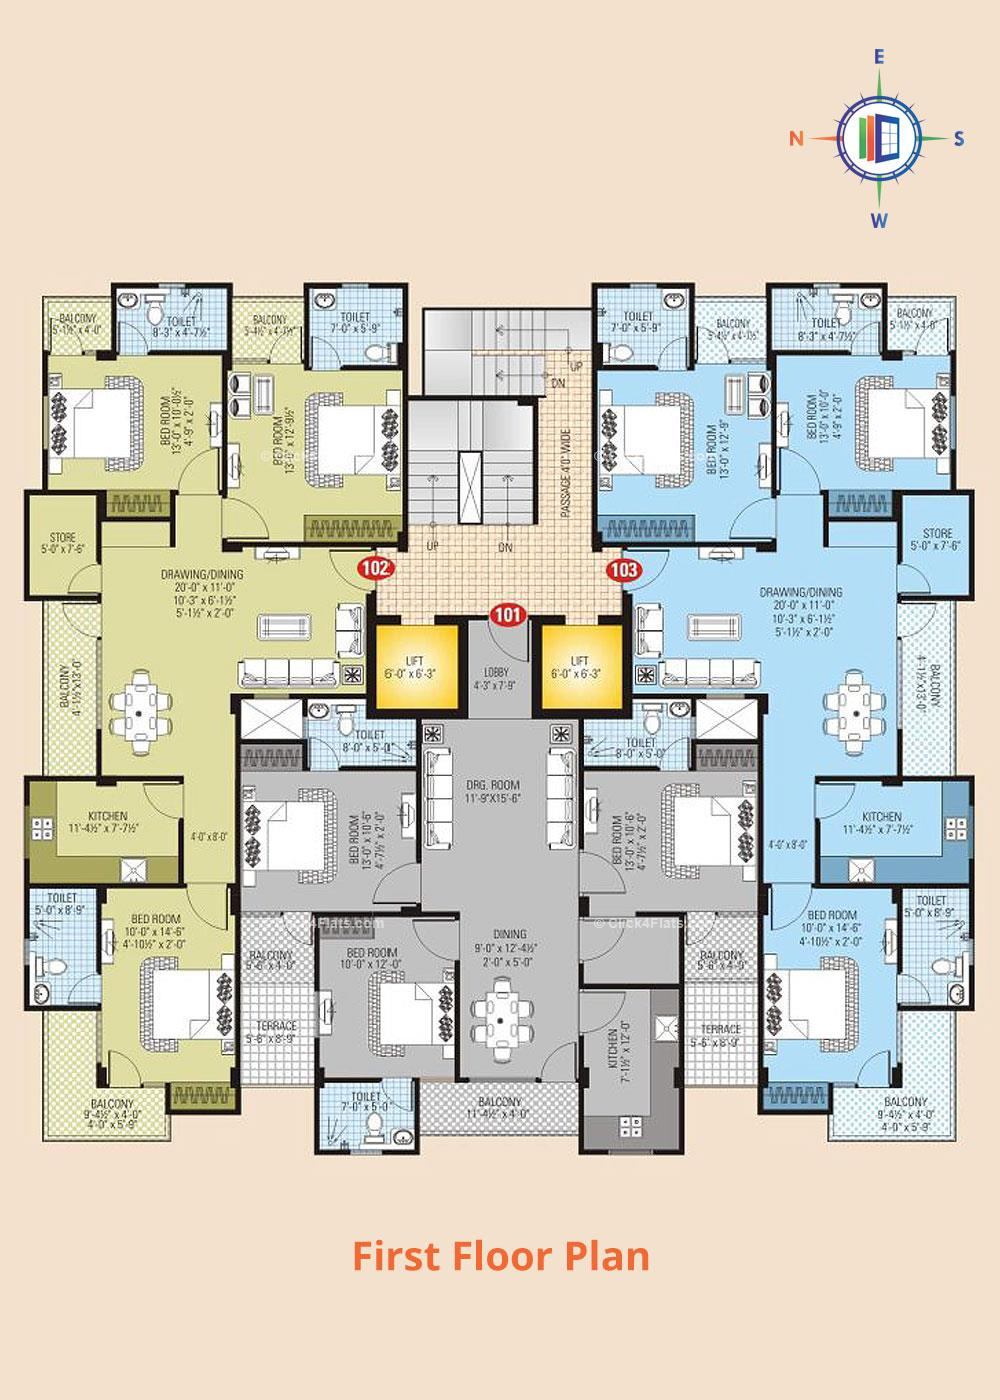 SDC Dav First Floor Plan